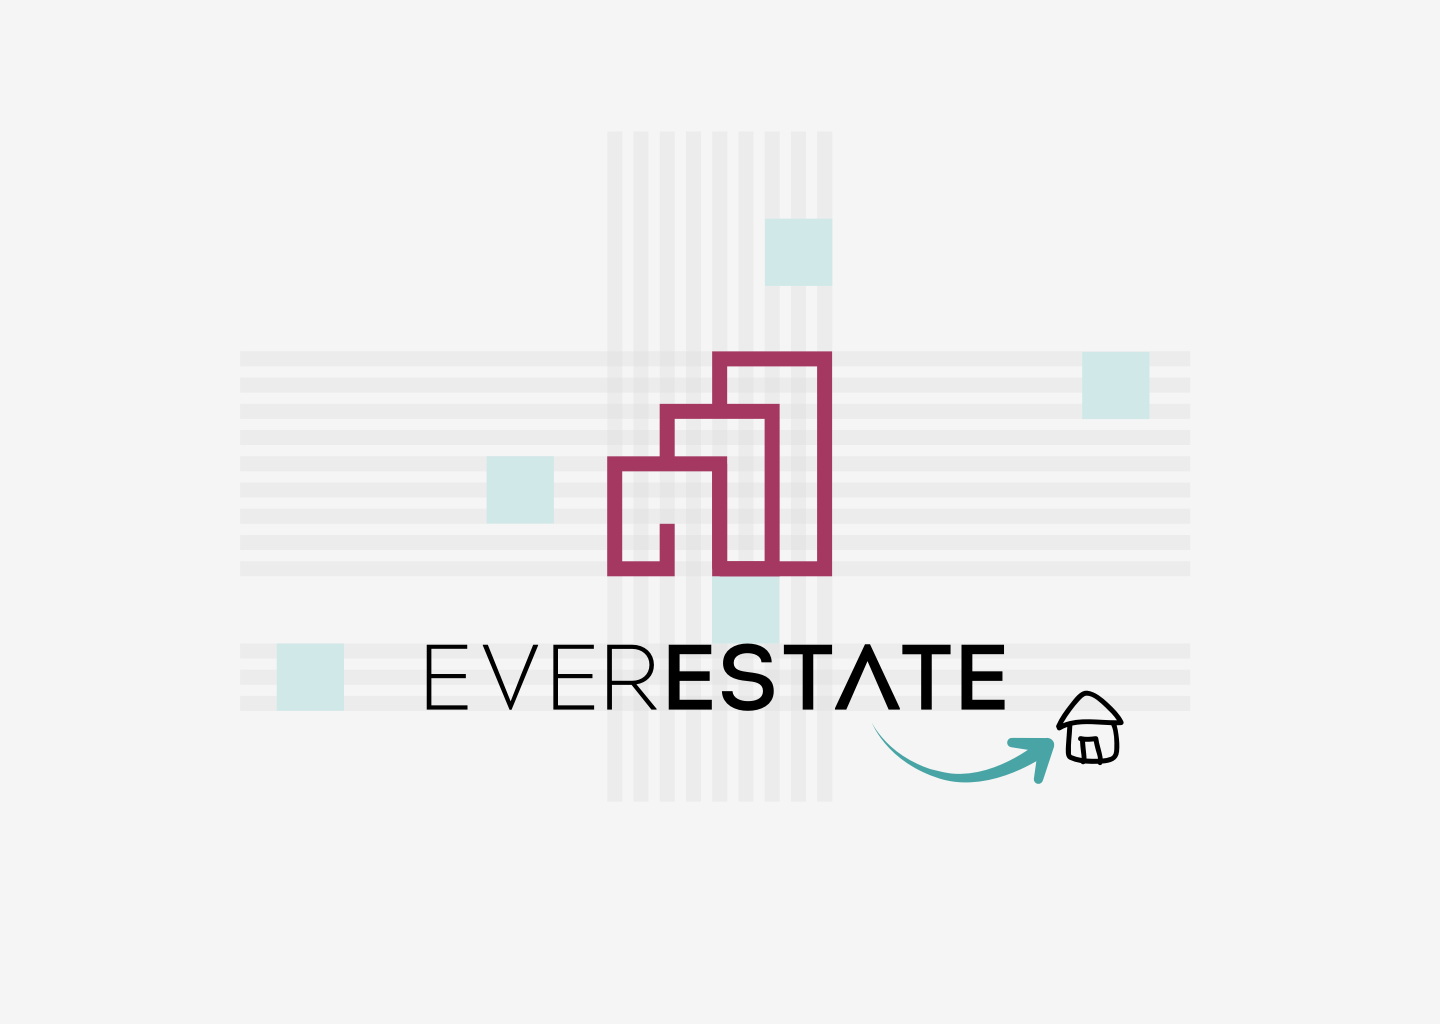 1 everestate logo